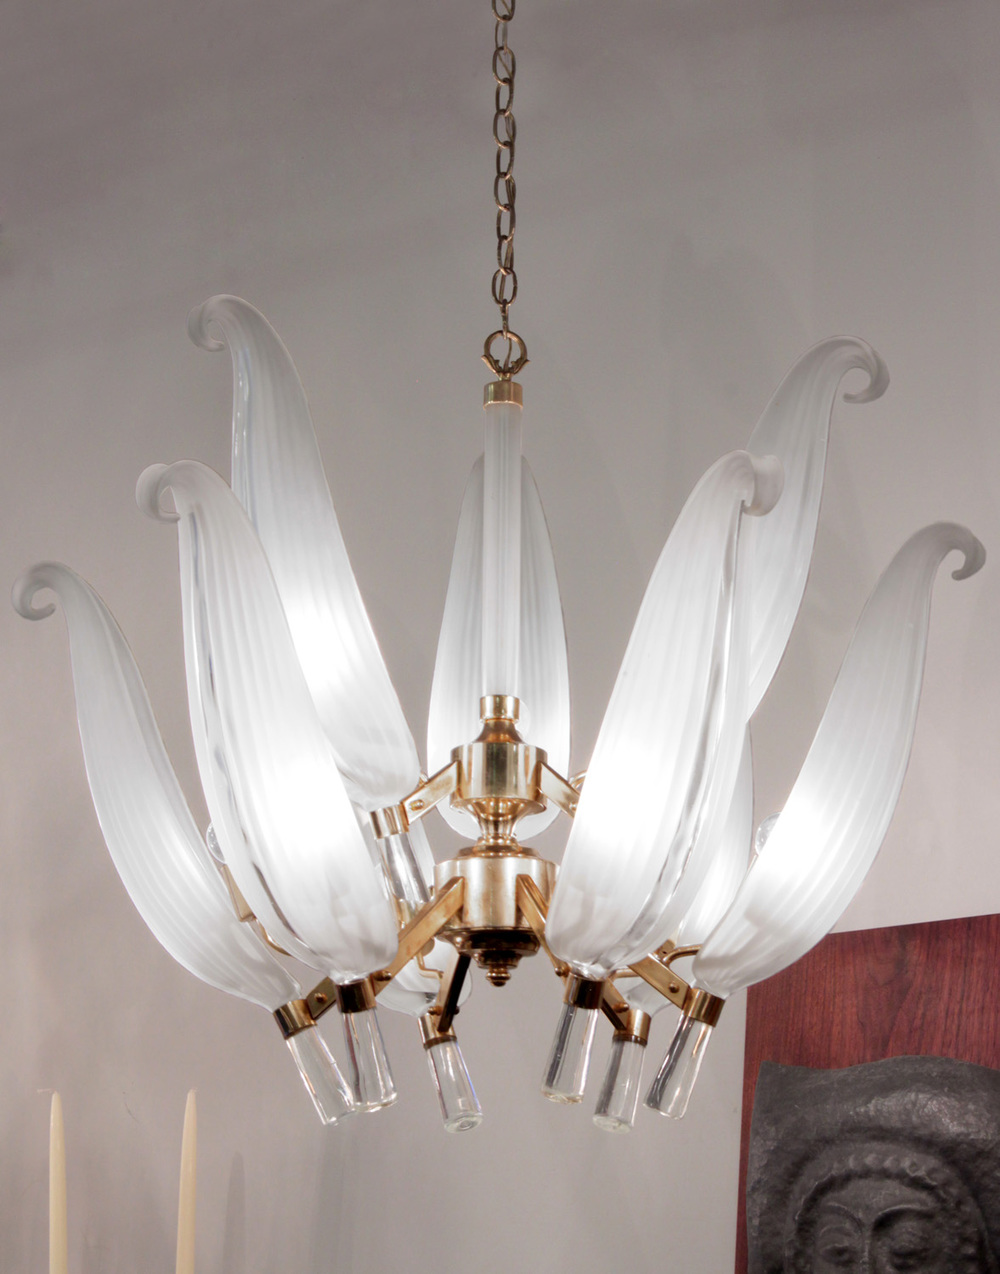 70s Murano 2 tier glass leaves chandelier184 detail3 hires.jpg